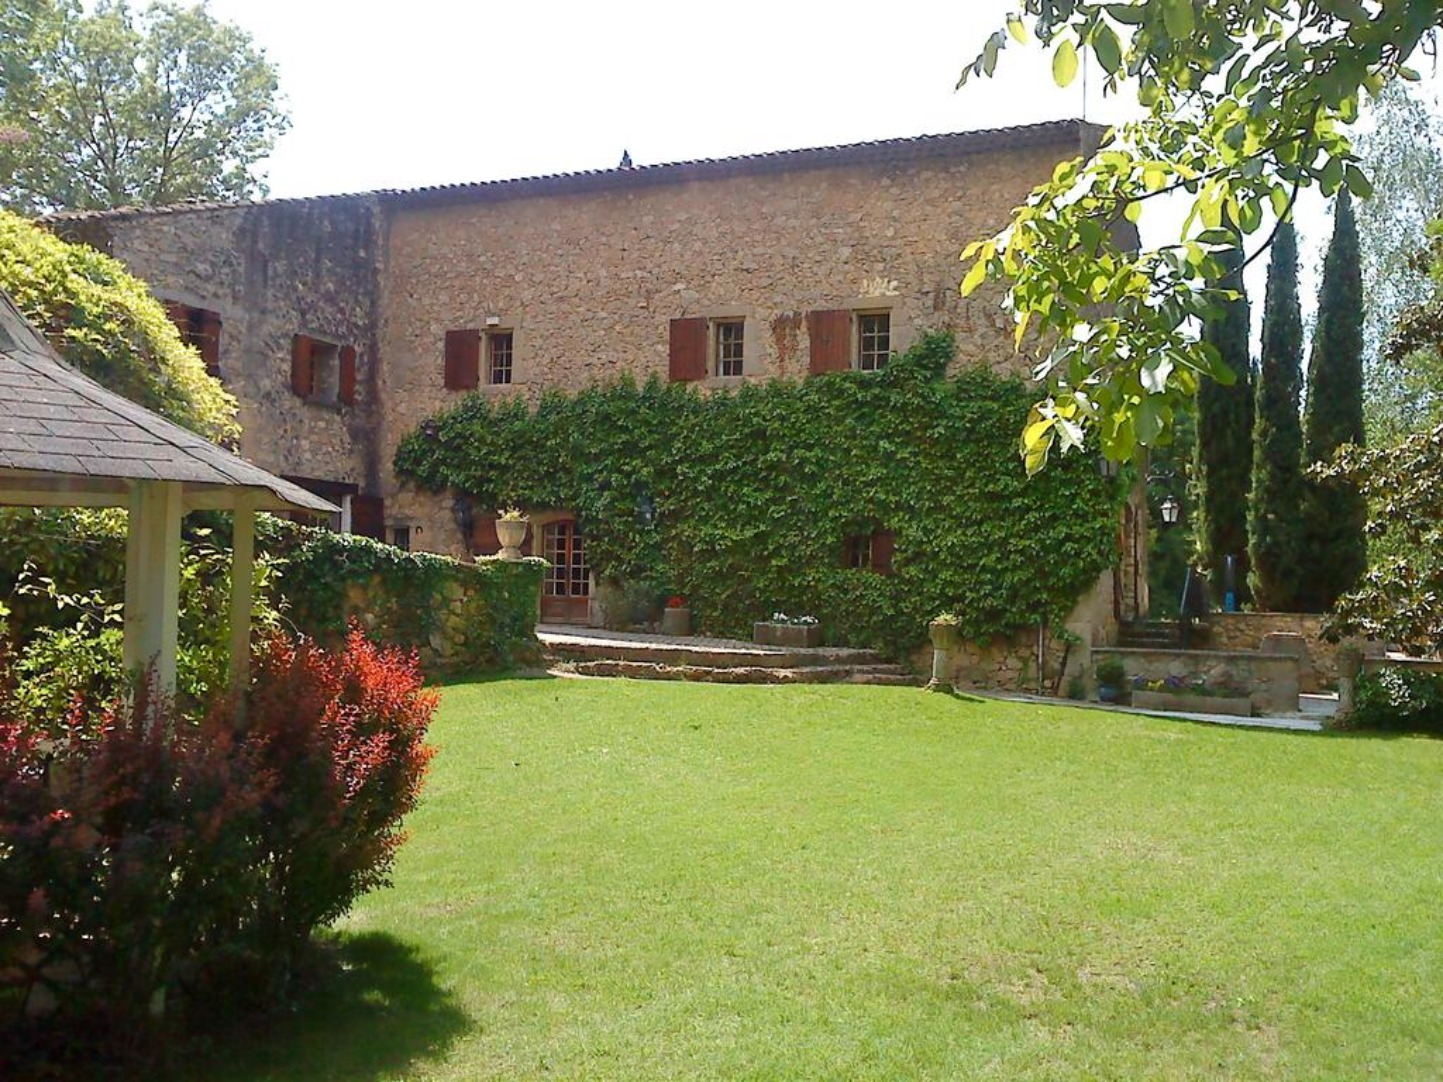 A large brick building with grass and trees at Le Vieux Moulin.